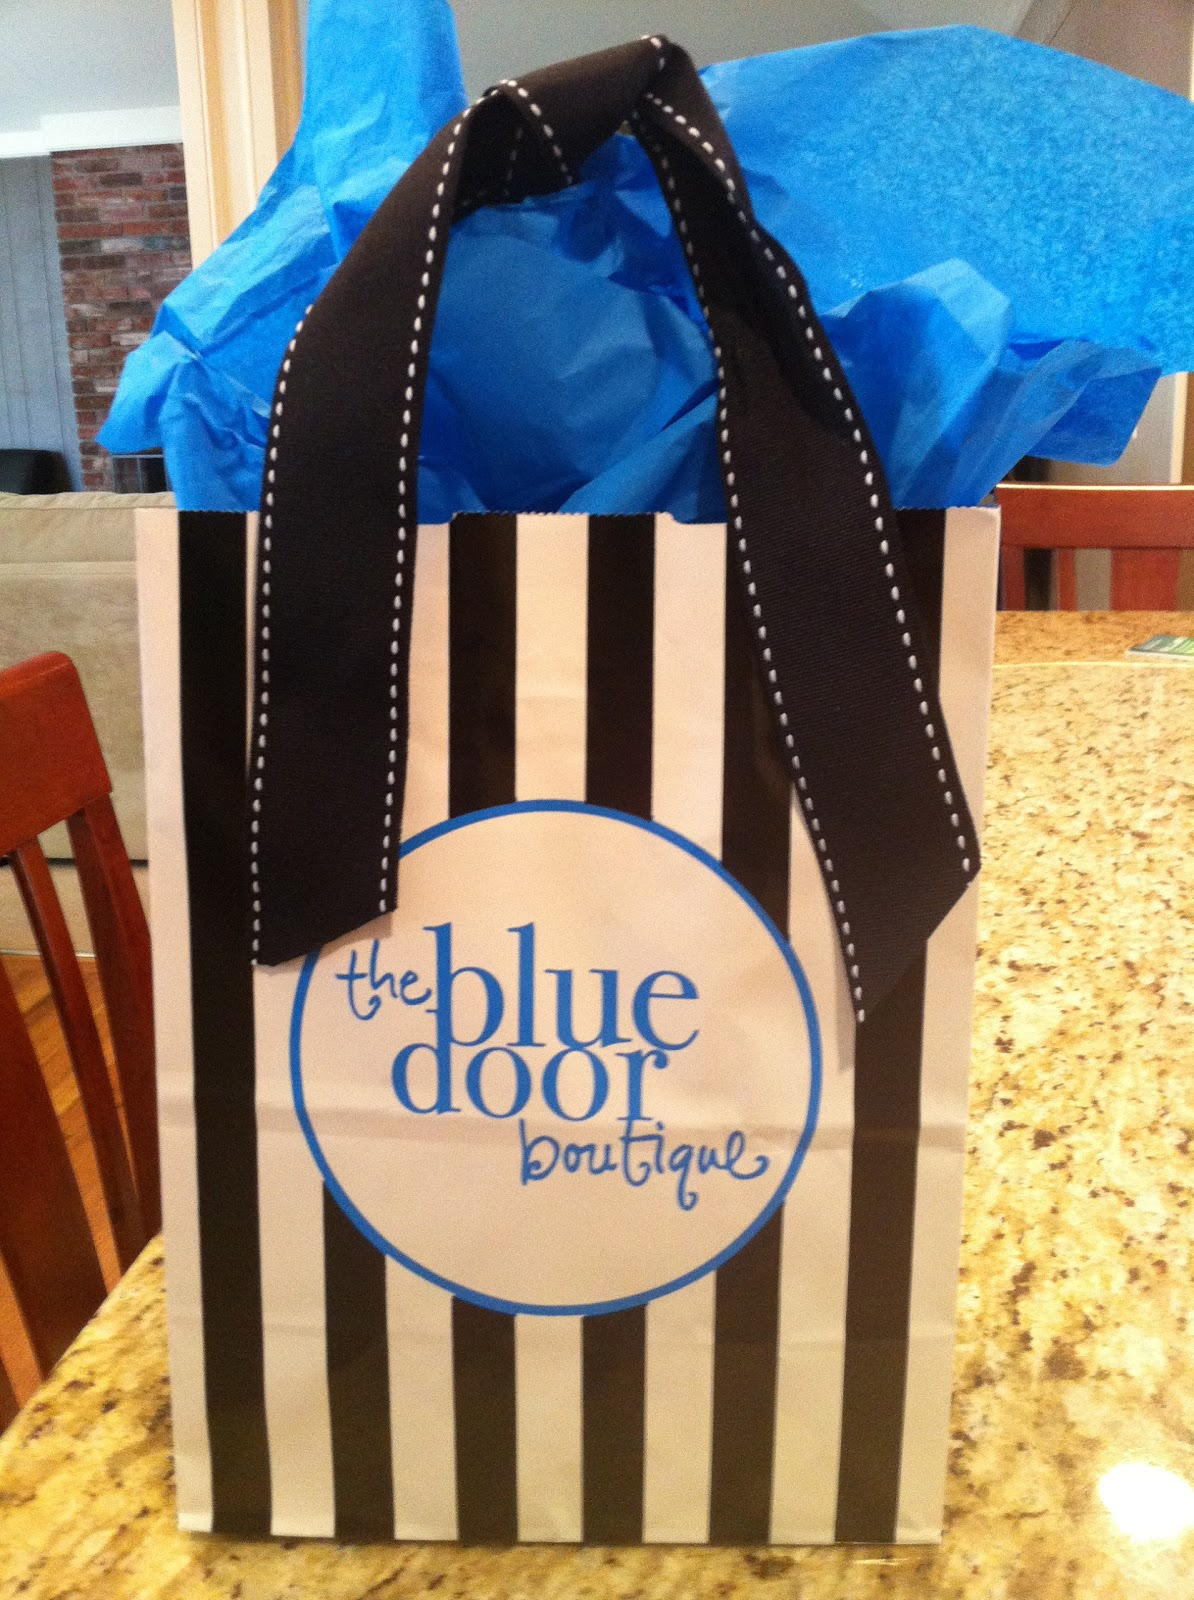 Fors Family Blog: Road Trip to The Blue Door Boutique